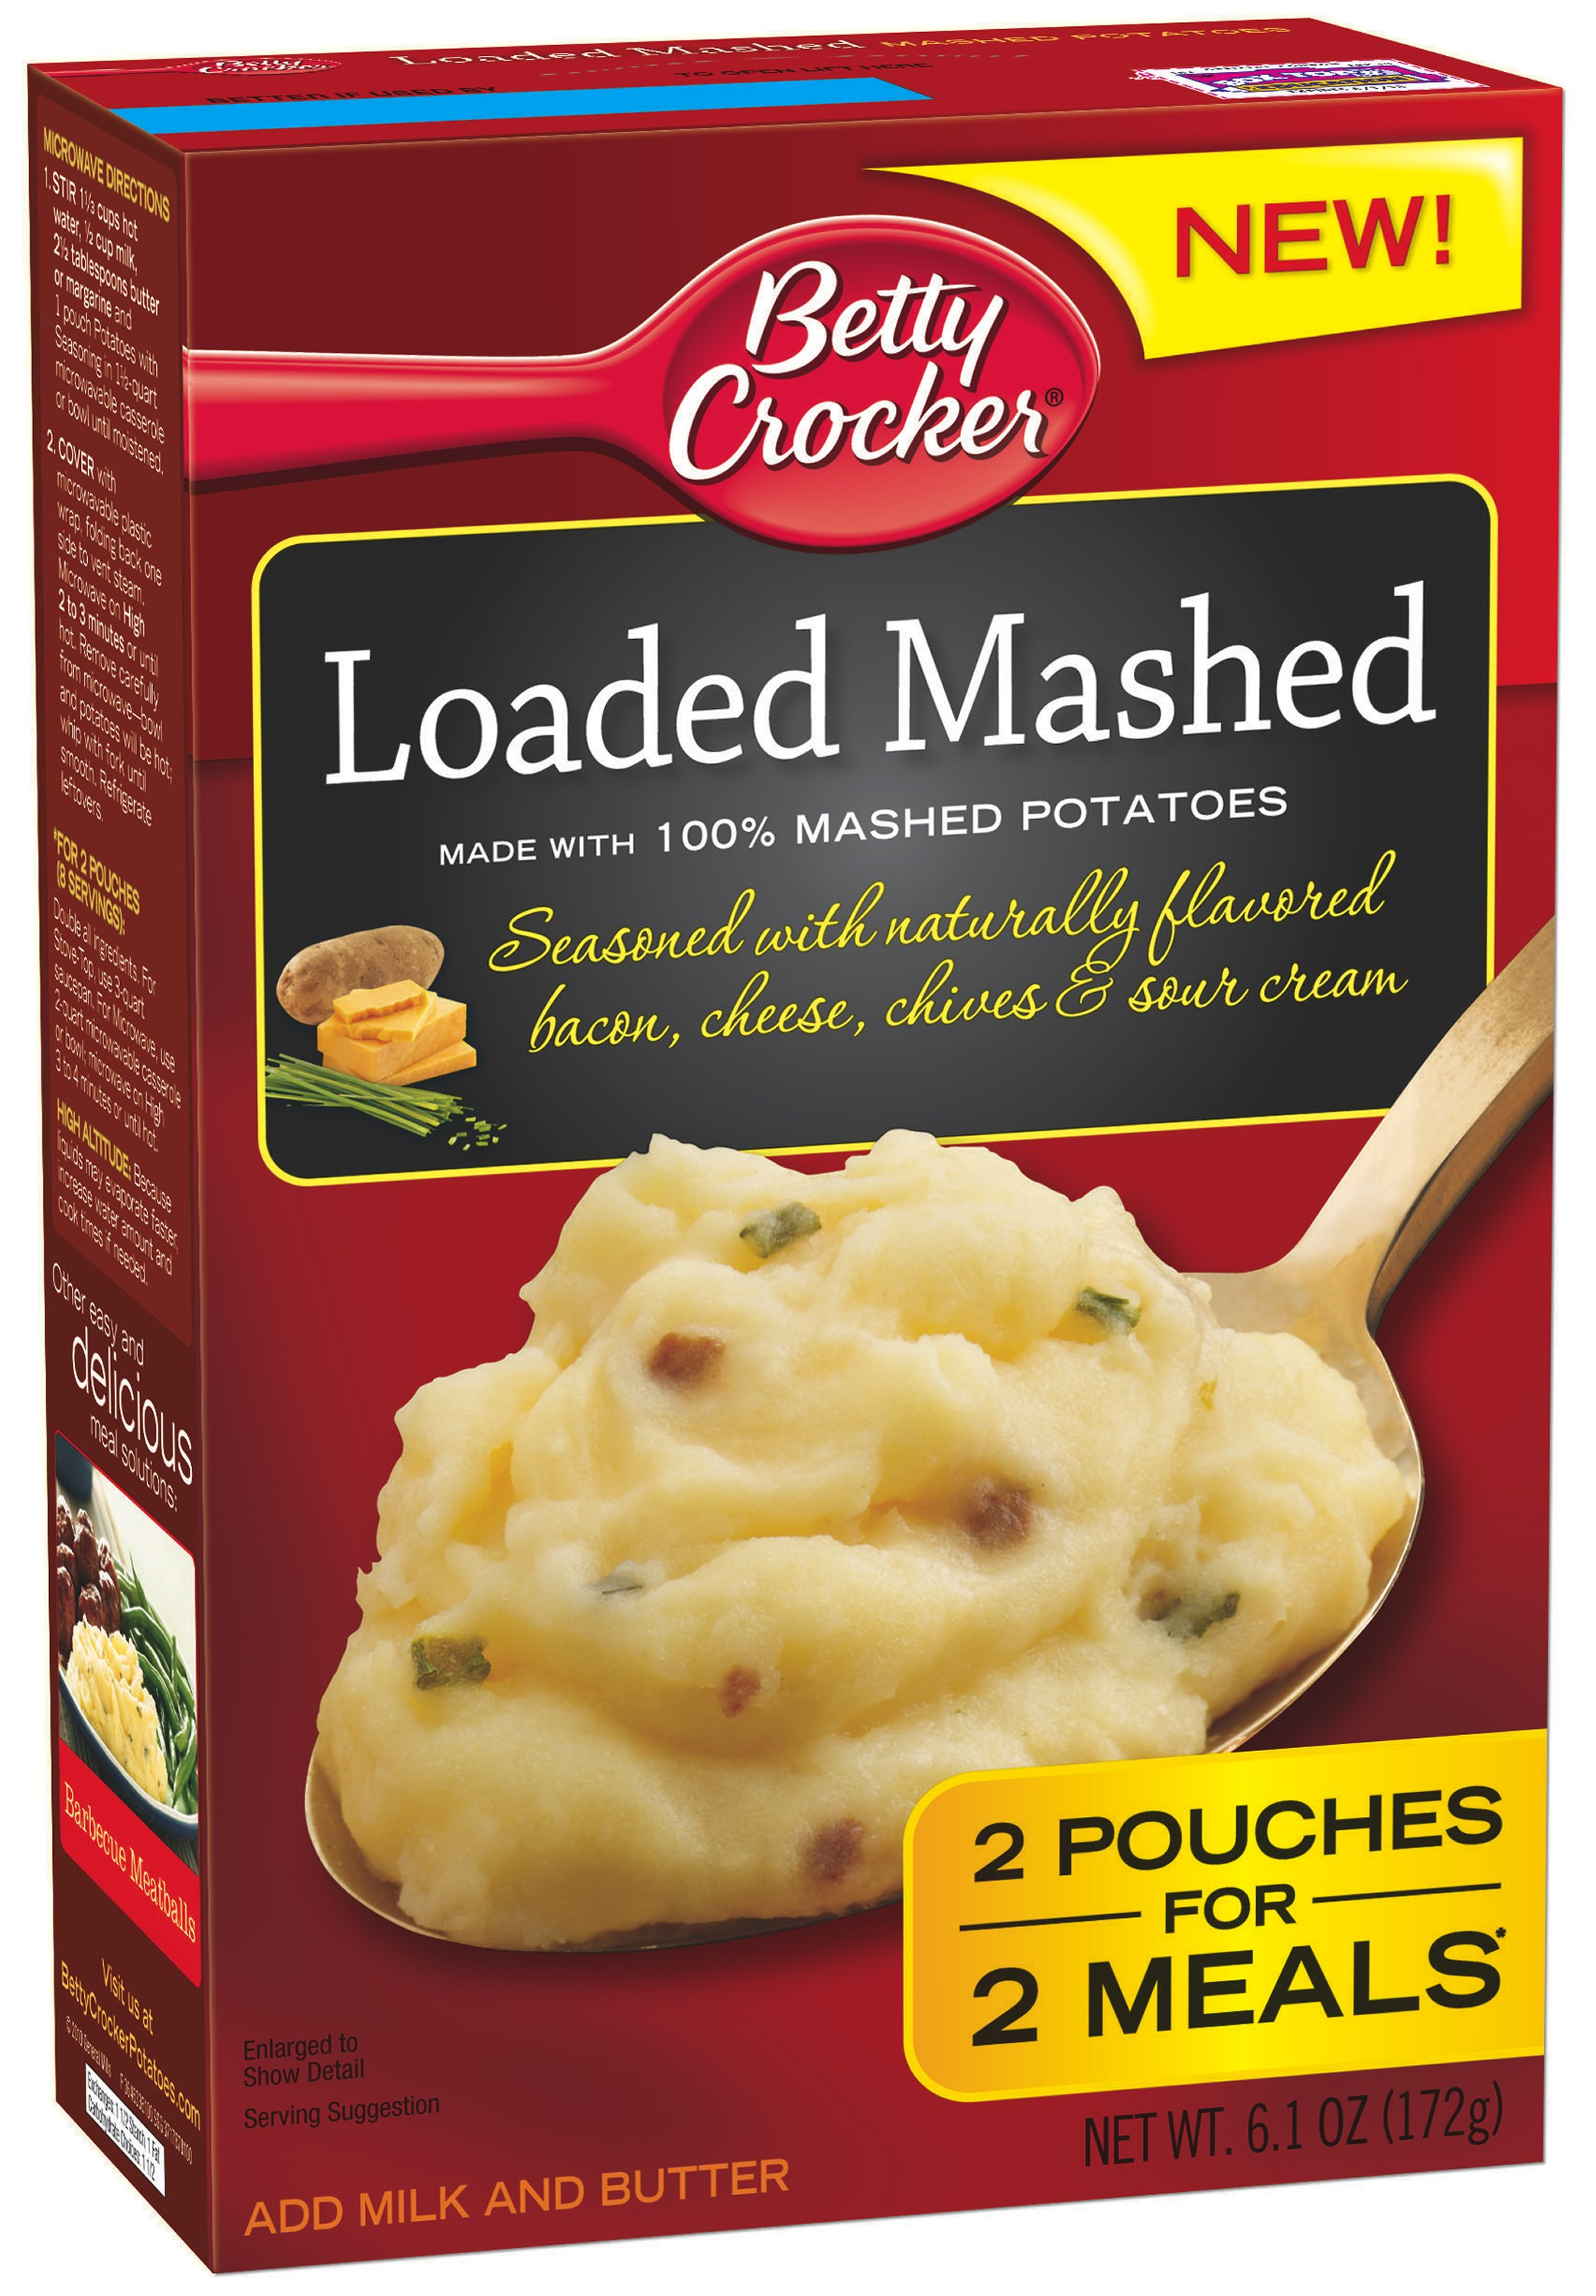 betty crocker loaded mashed potatoes review prize pack giveaway